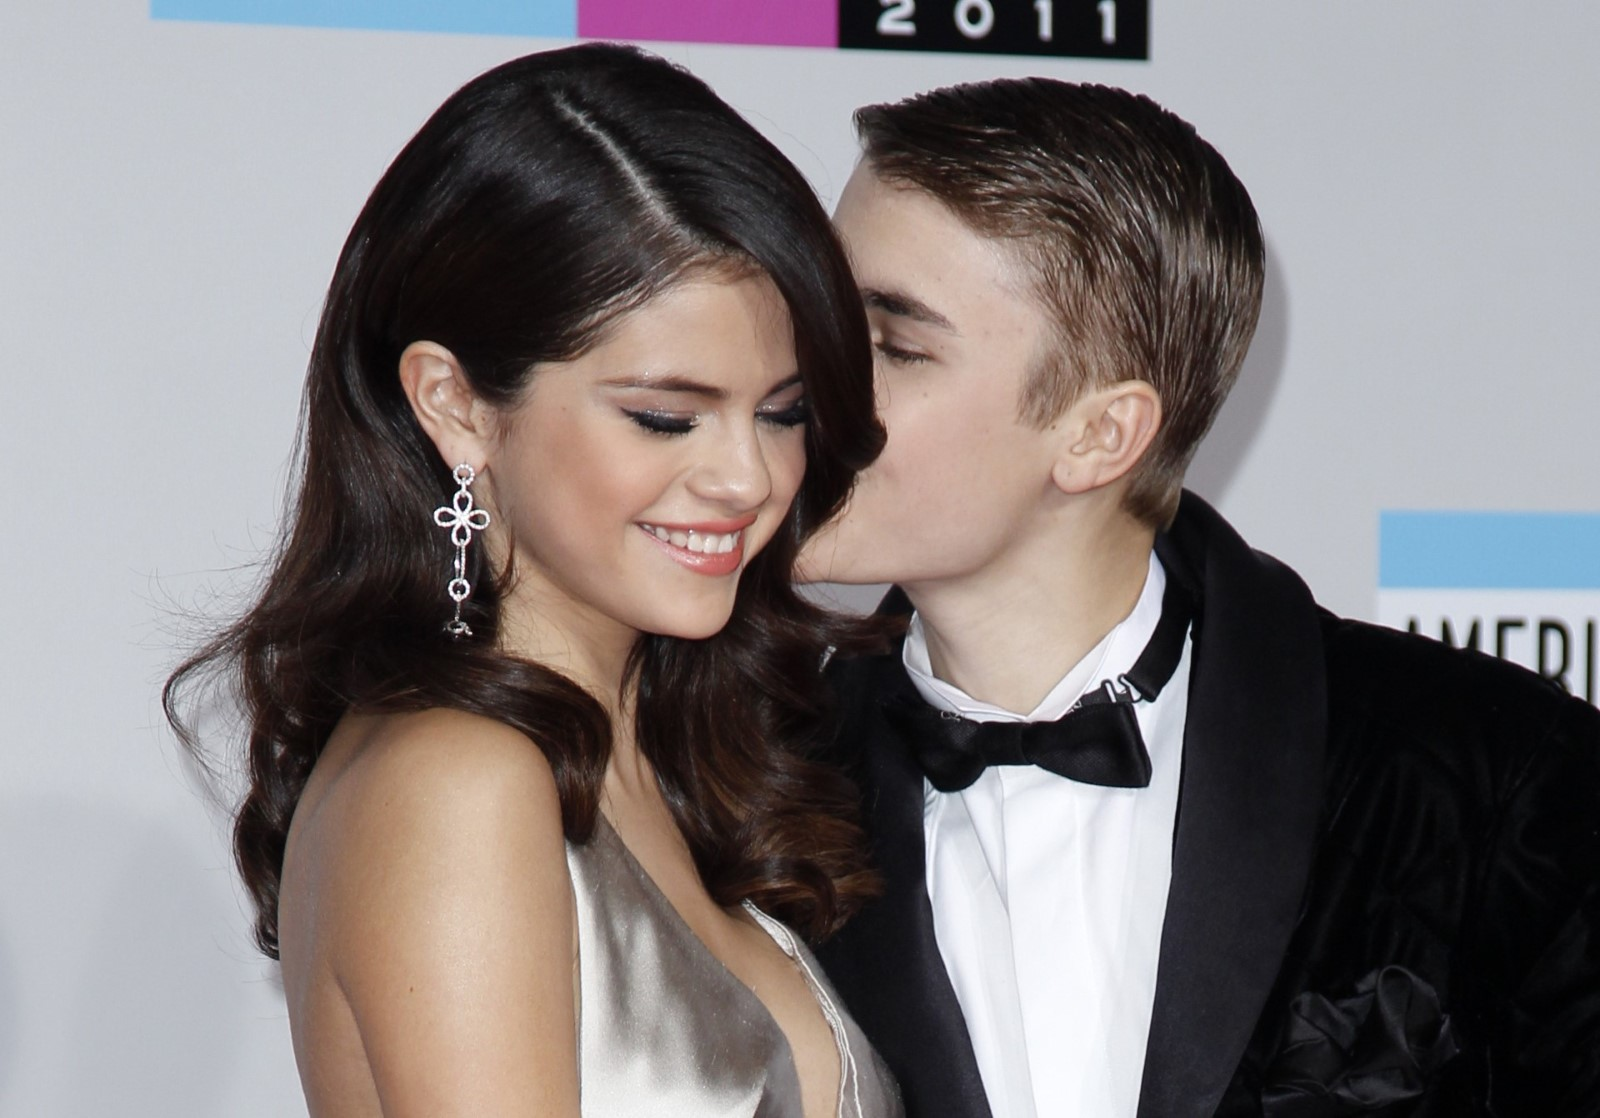 Although they initially wrote off their 2010 date at a Philadelphia IHOP as a friendly hangout Justin Bieber and Selena Gomez finally went public as a couple at the